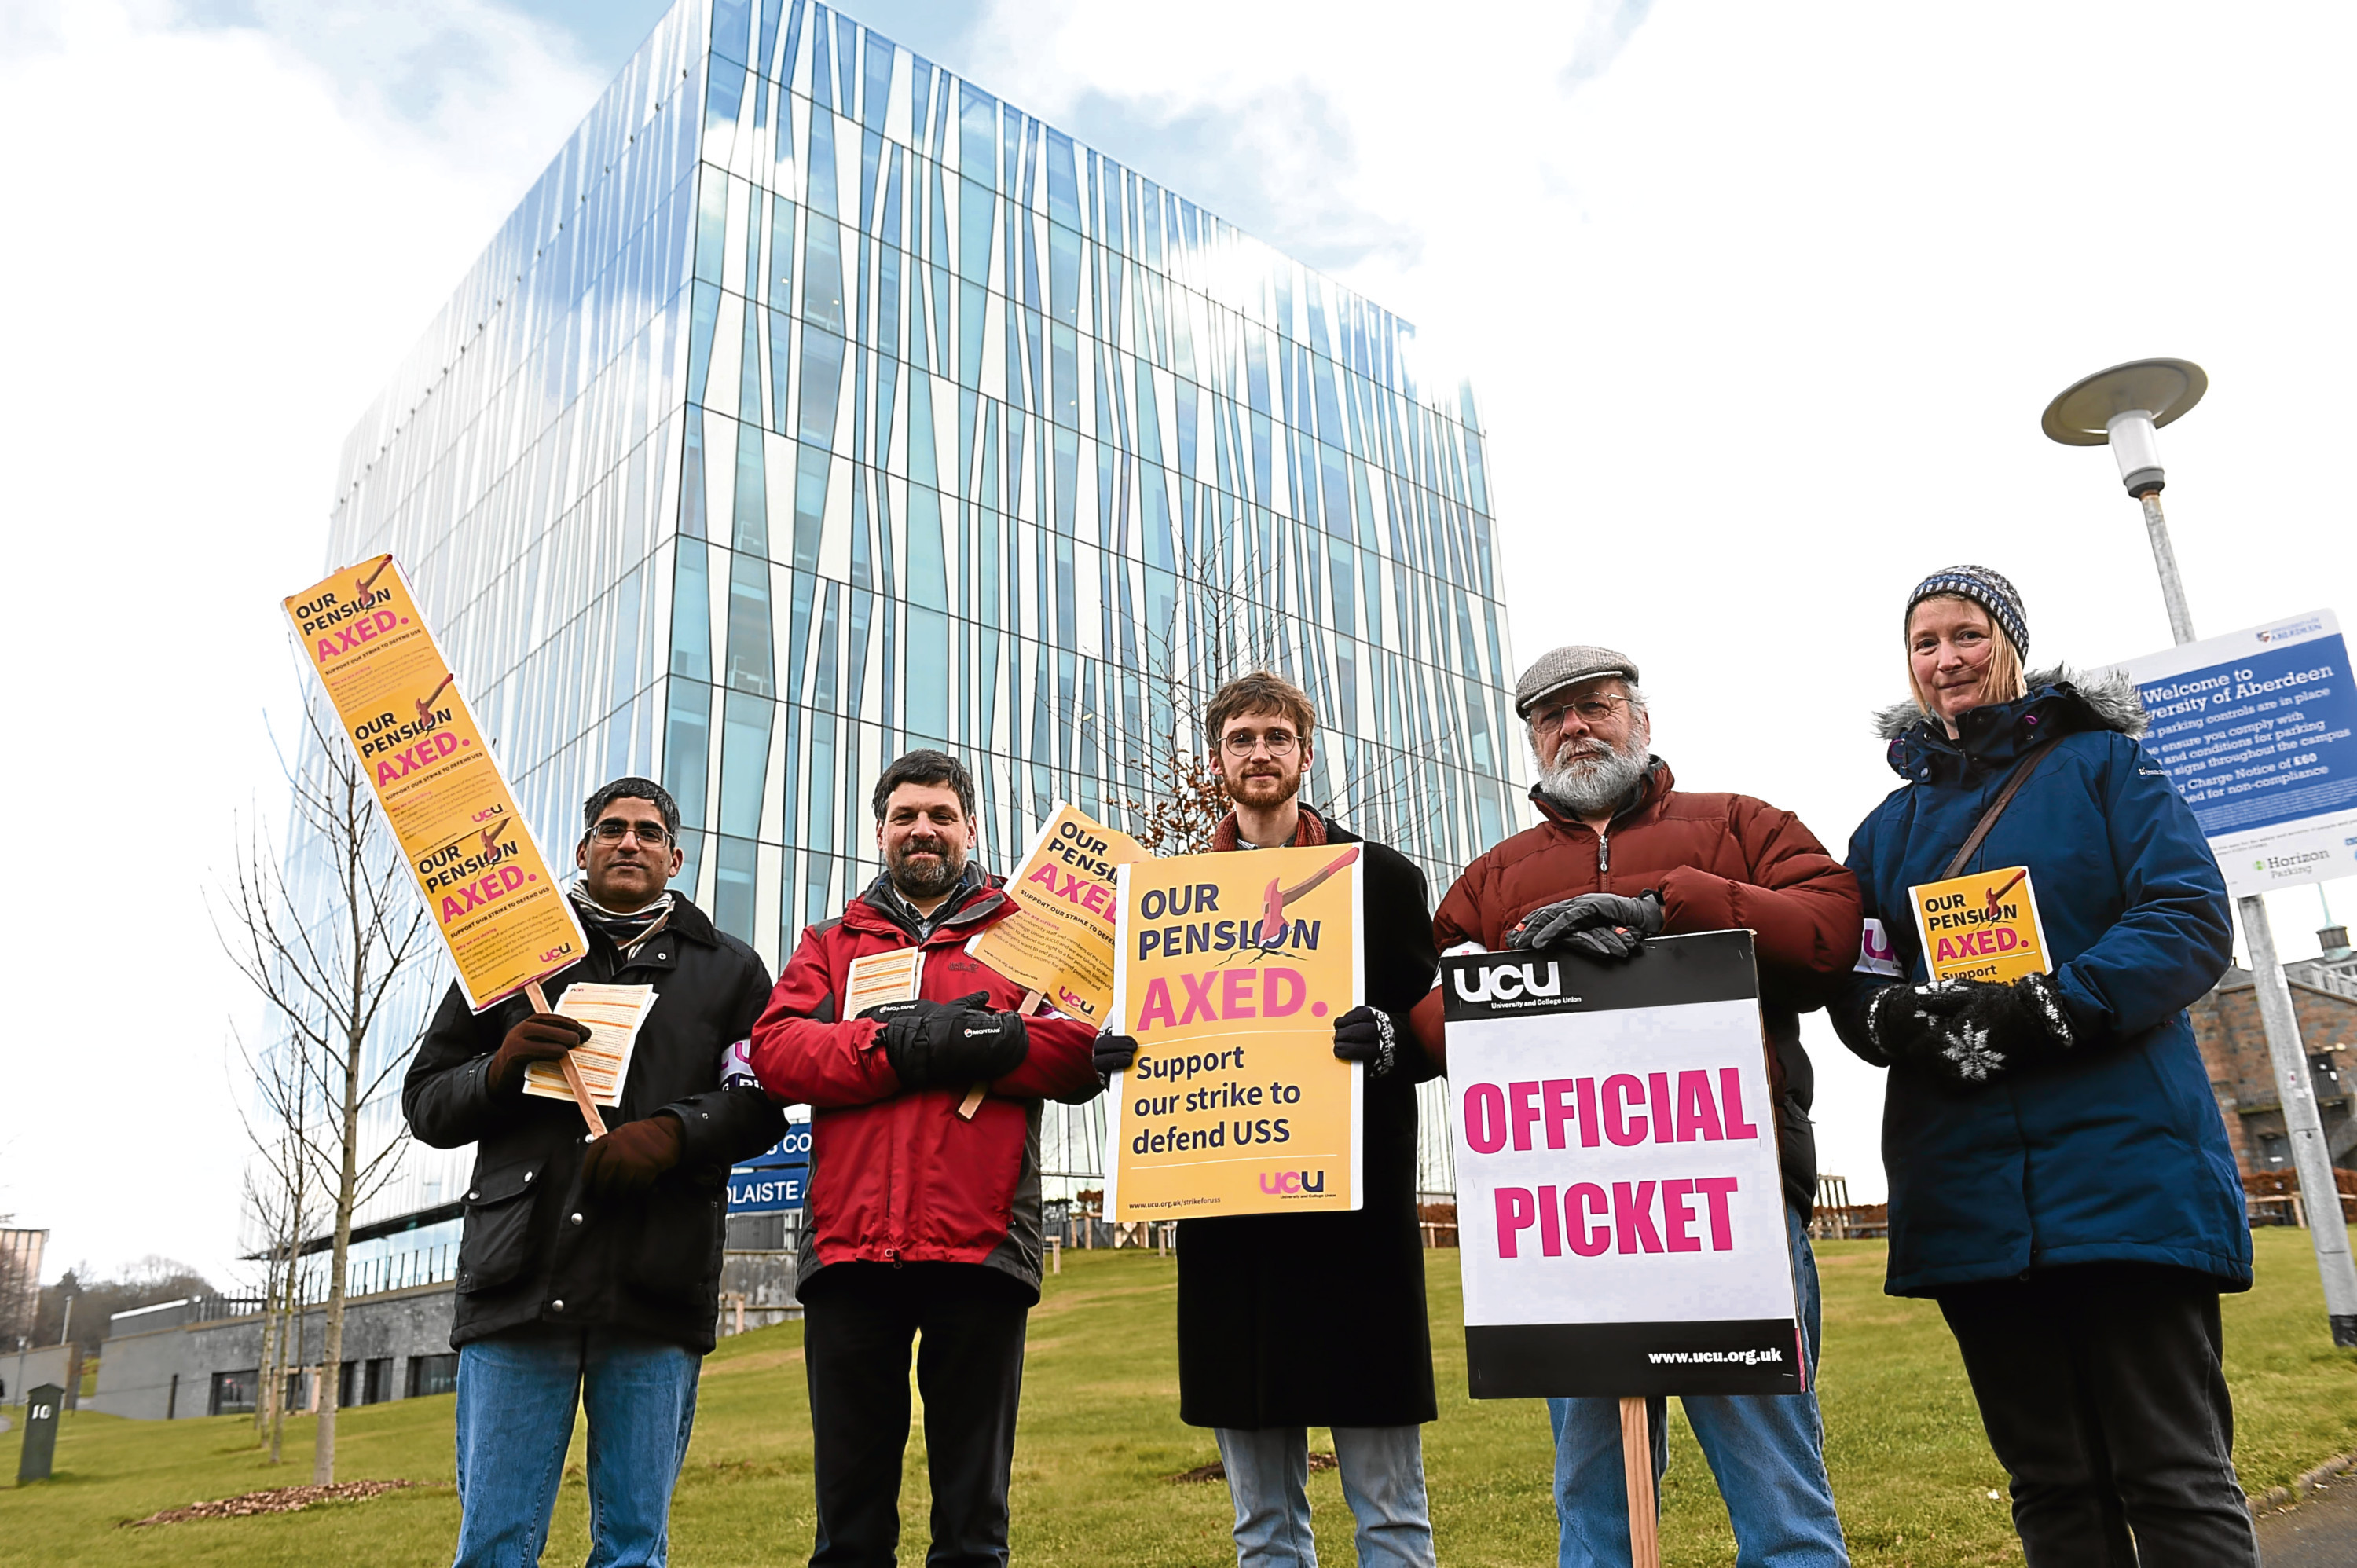 UCU members picketing at the University of Aberdeen.